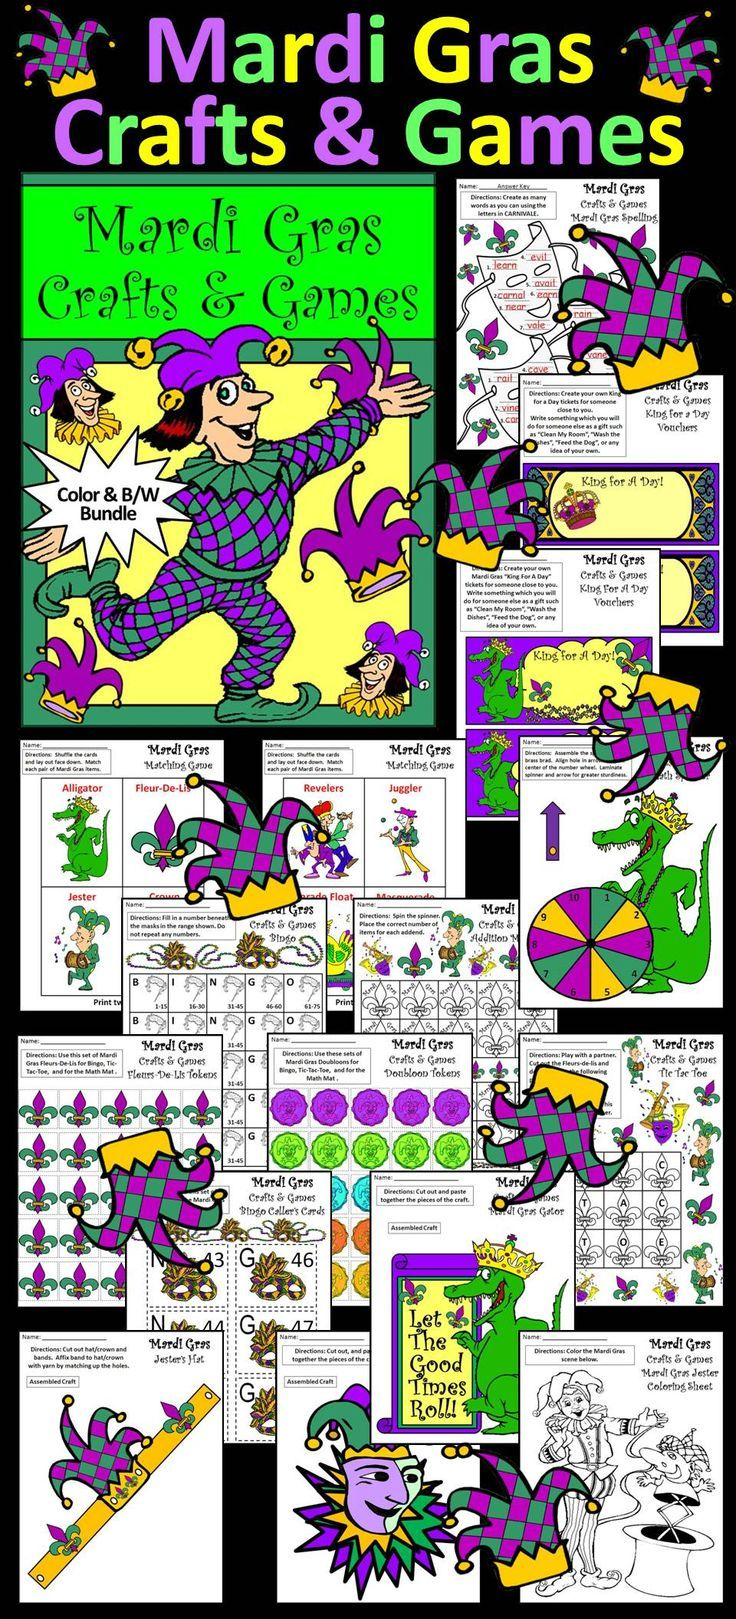 "Mardi Gras Crafts & Games Activity Packet: Contents include: * Spelling Activities * Matching Card Game * Alligator Math Spinner * Addition Math Mat * Tic Tac Toe Board * ""Create Your Own"" Bingo Board * Fleurs-De-Lis Counters * Doubloons Counters  * Bingo Caller's Cards * Construction Crafts (Alligator, Jester, Jester's Hat, King's Crown, Queen's Tiara) * King for a Day Coupons * Coloring Sheets  #Mardi #Gras #Crafts #Games #Activities #Teacherspayteachers"